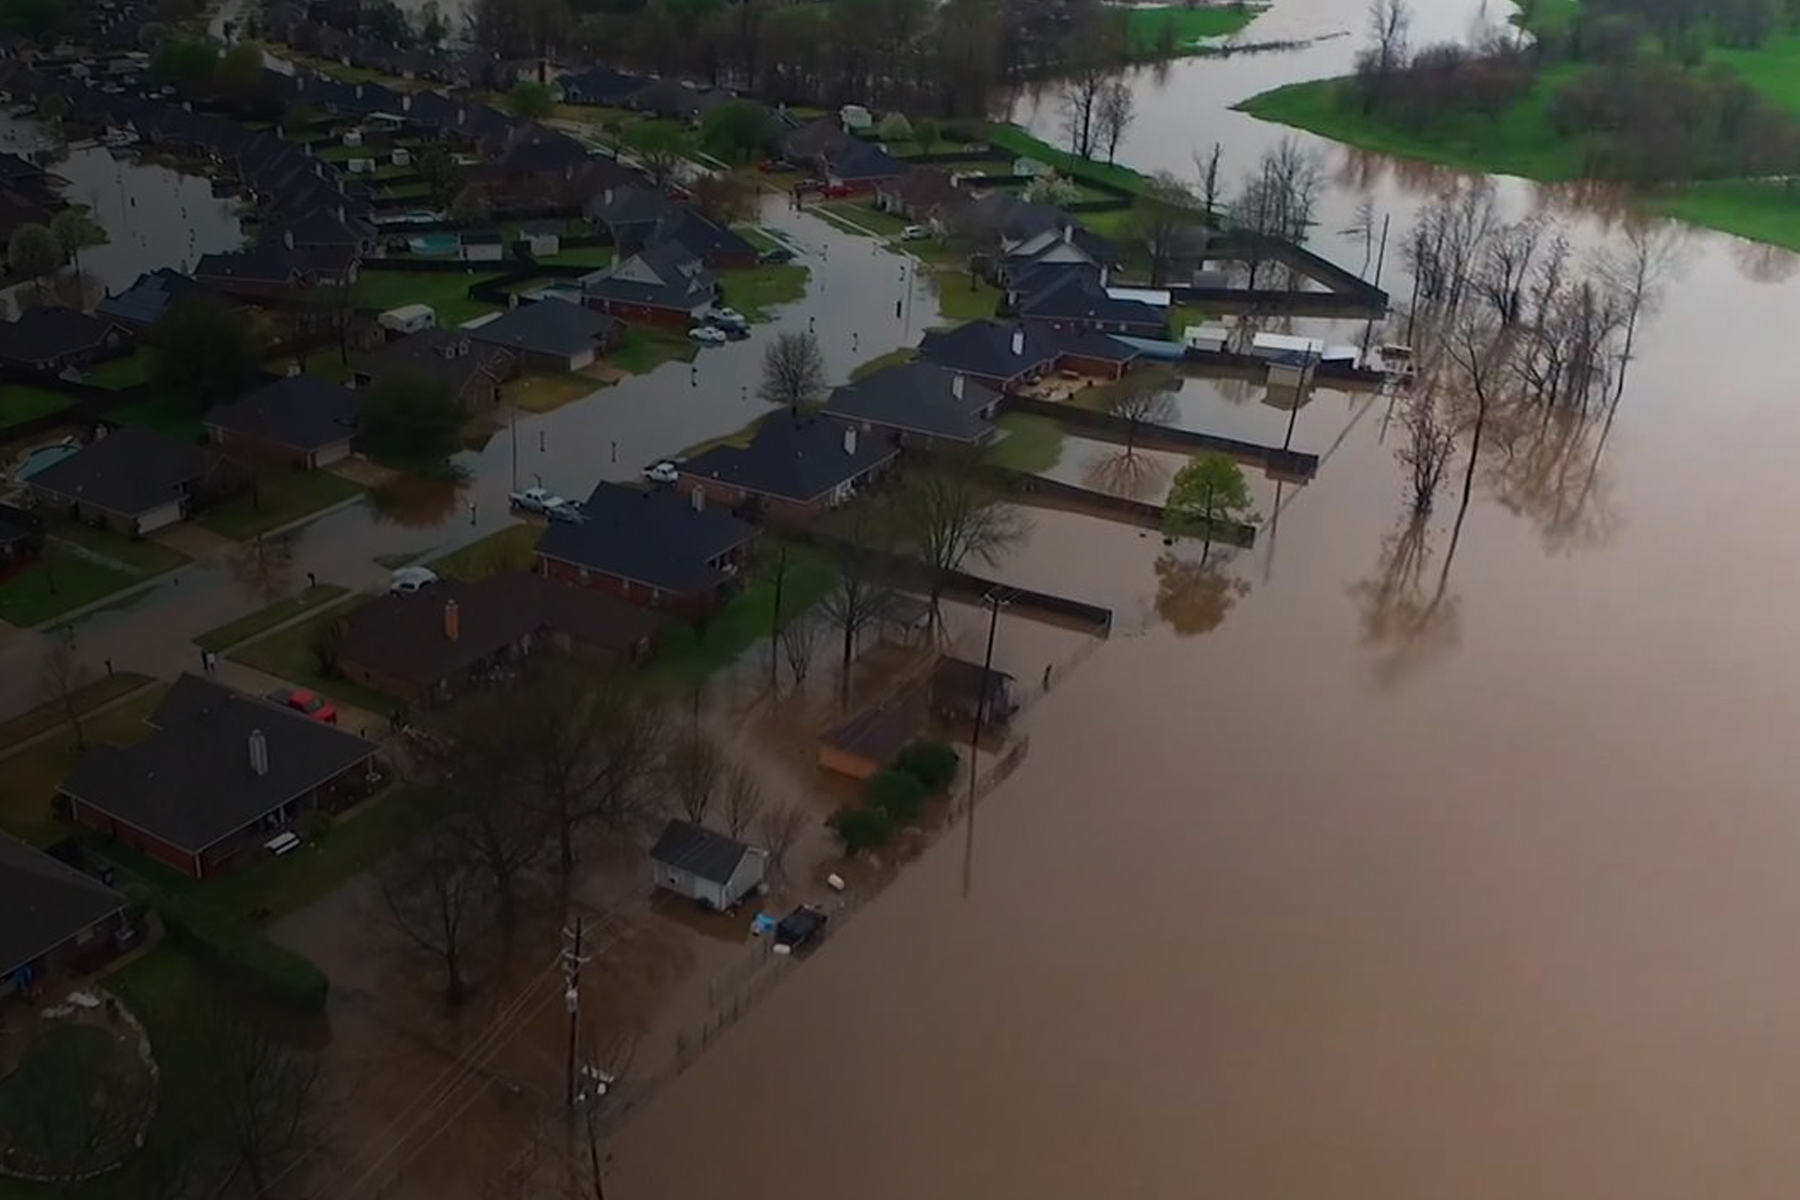 Flooding in Louisiana: Preservation Resources